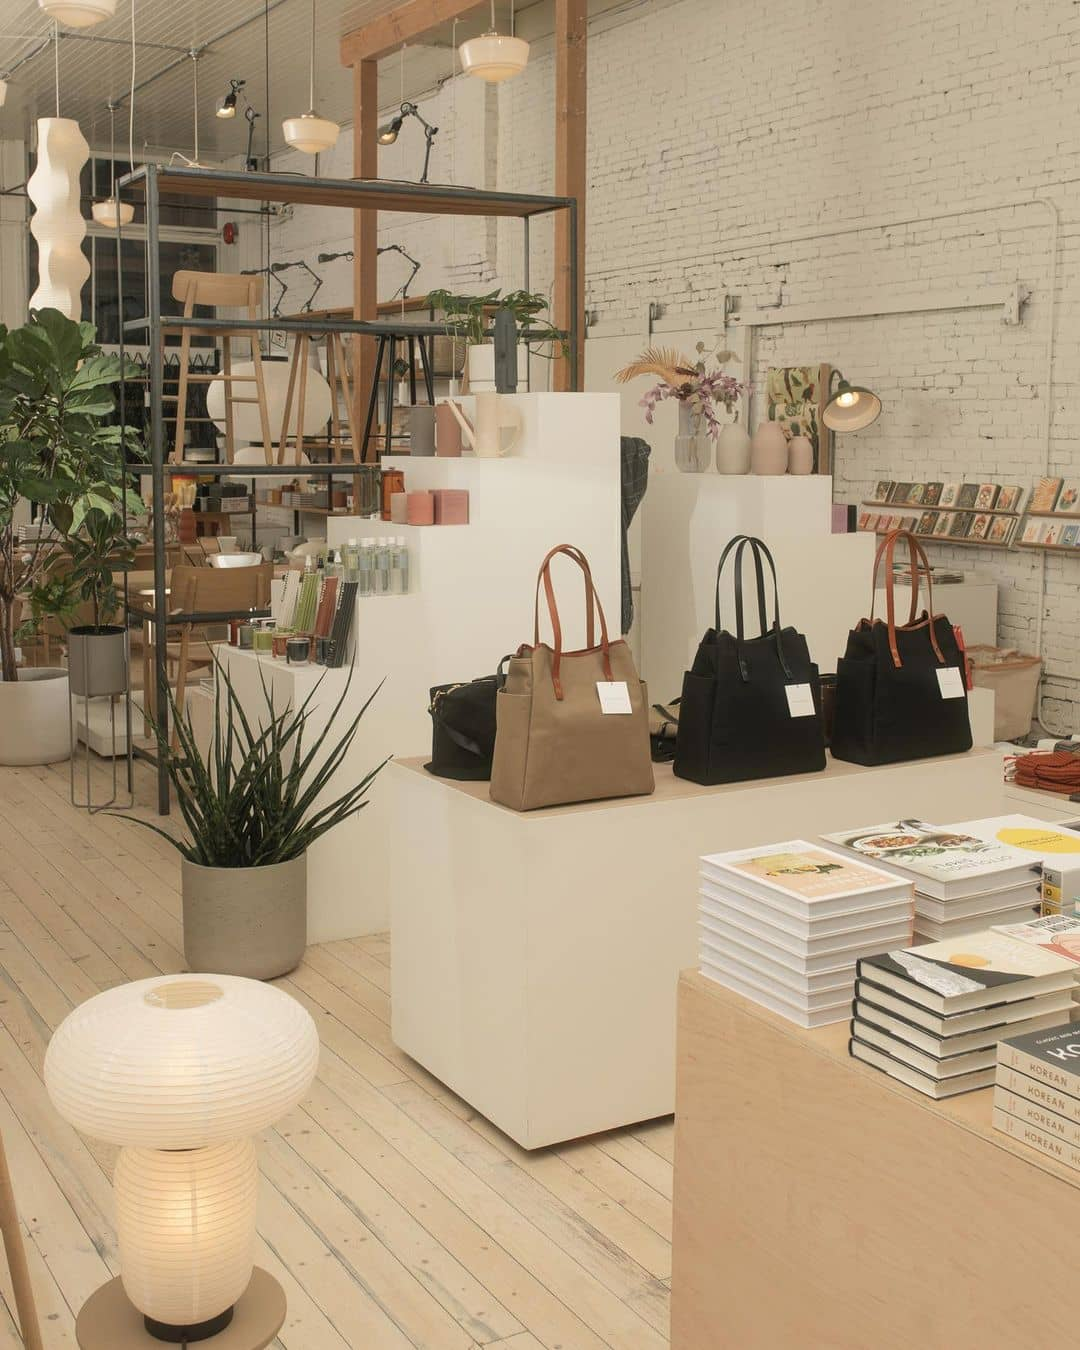 best places to shop in vancouver - old faithful shop interior